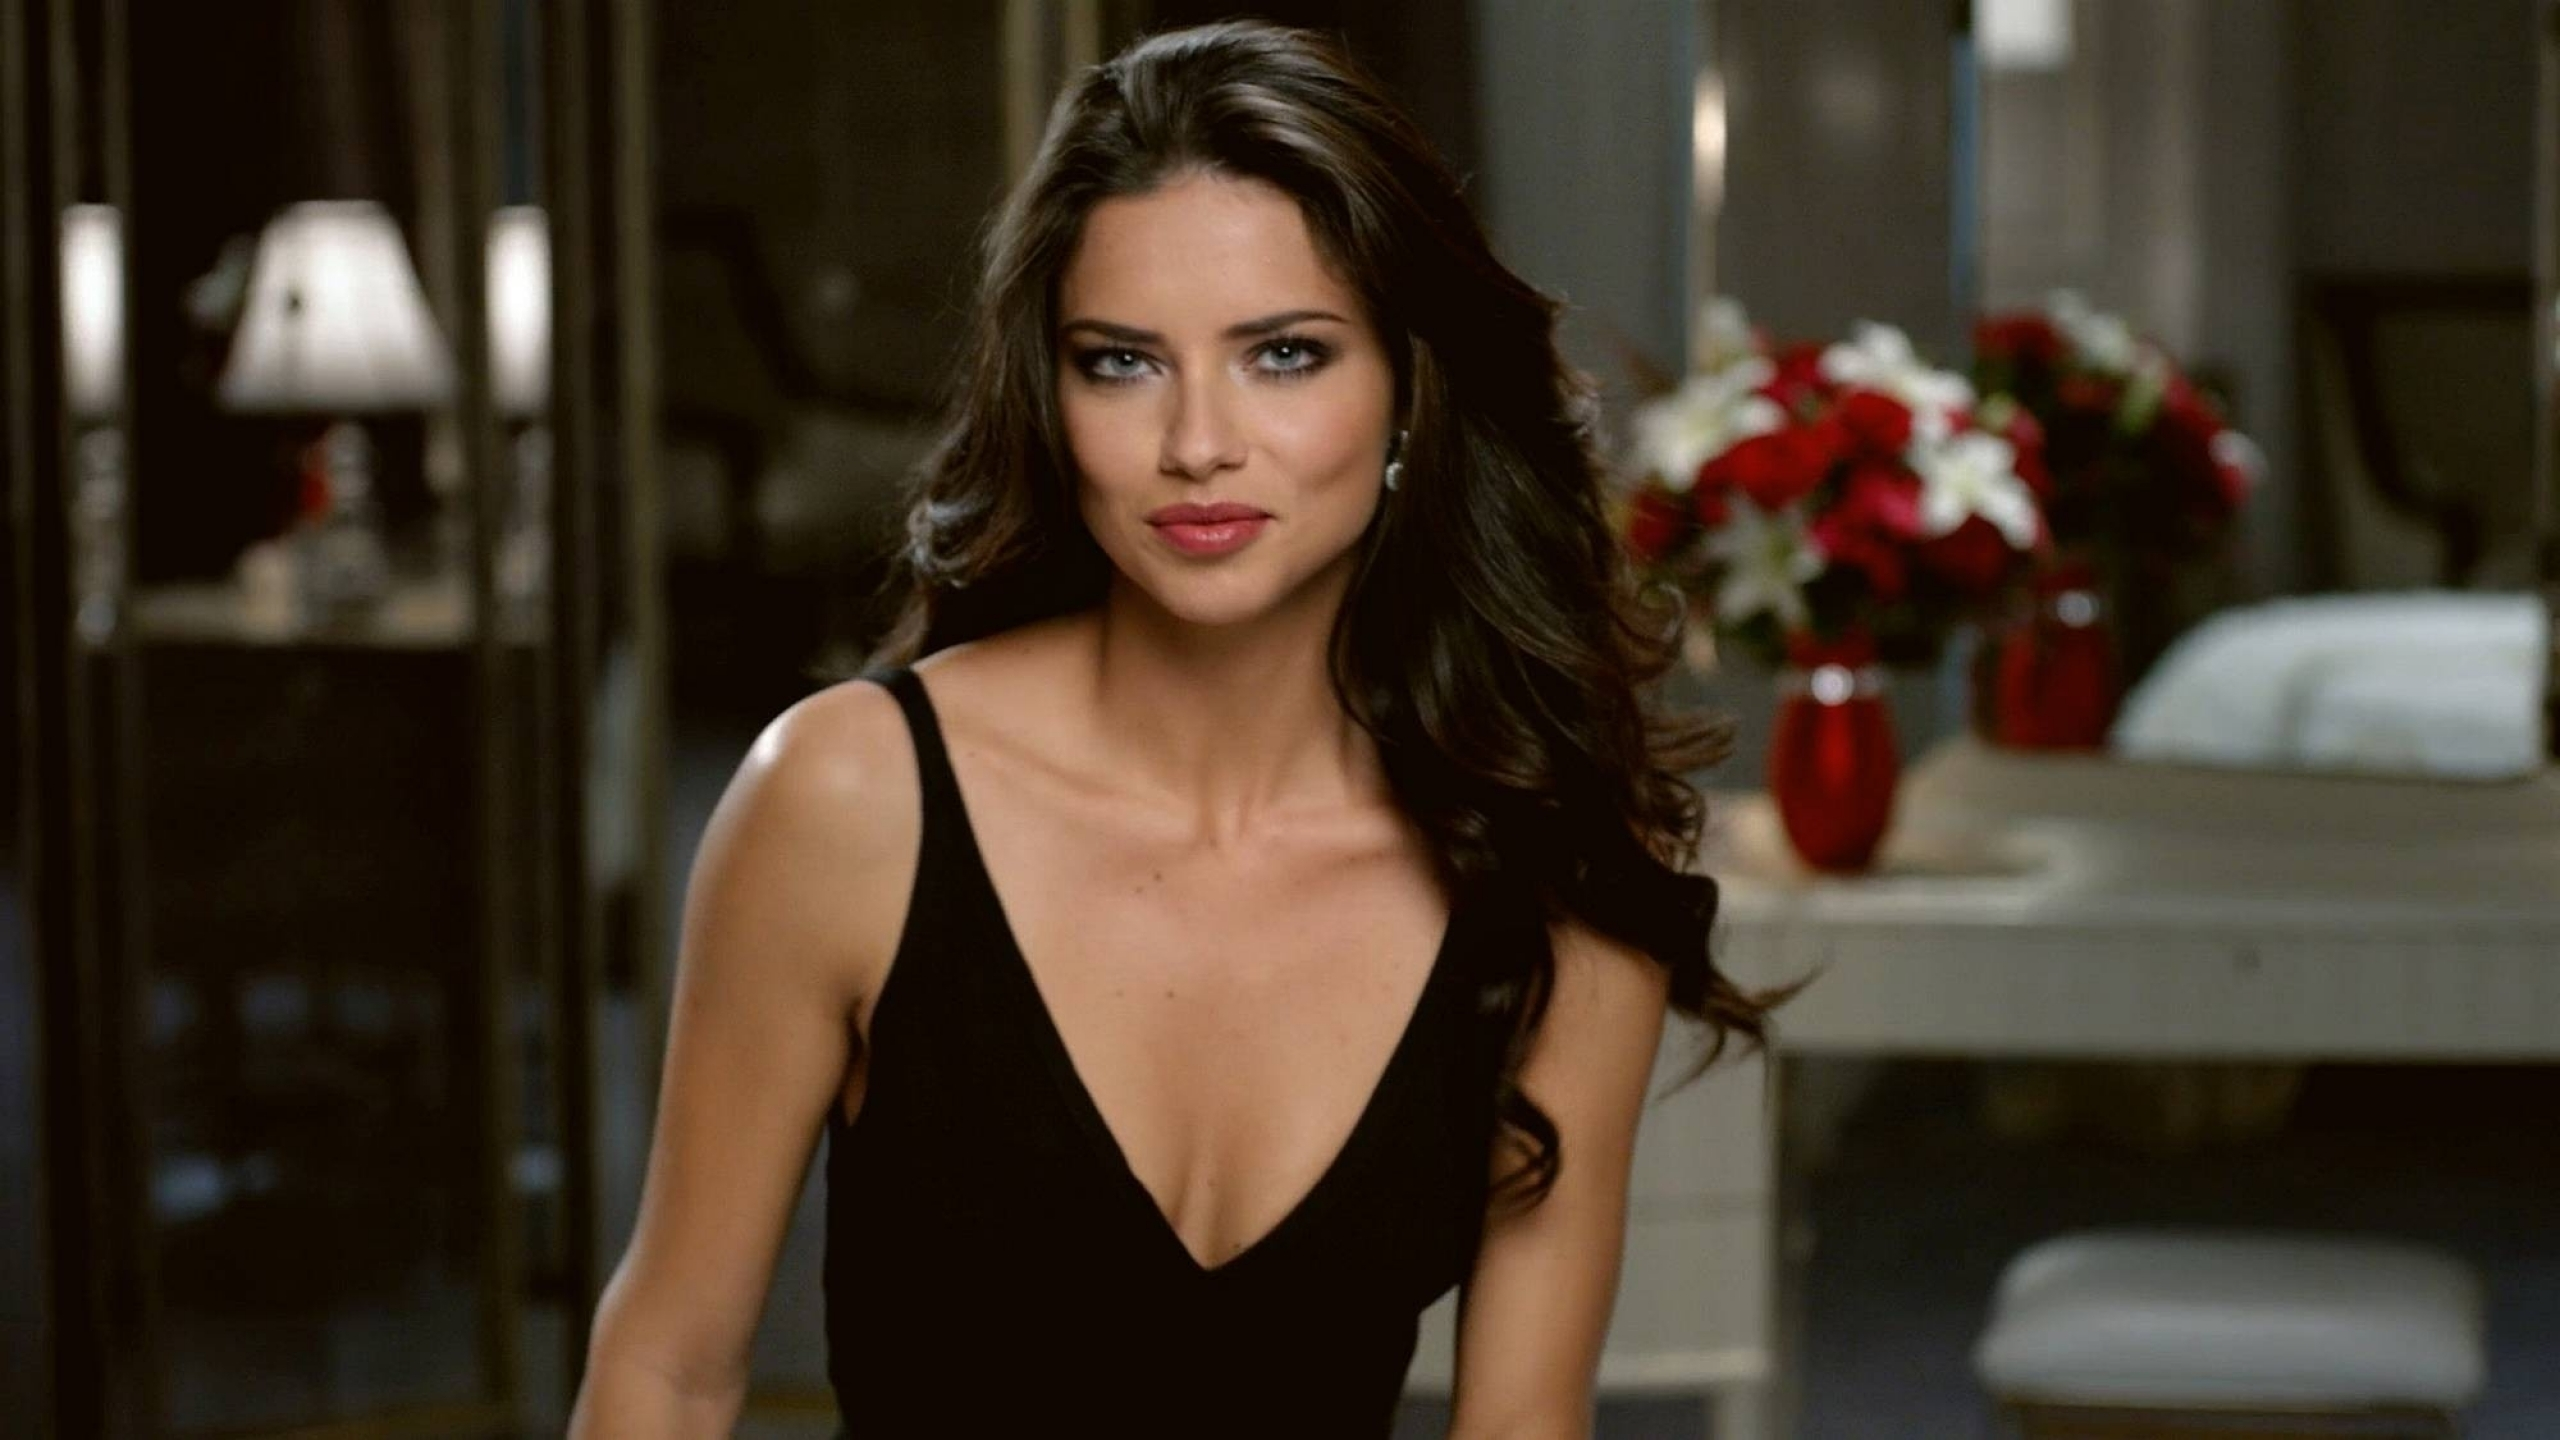 Adriana Lima Wallpaper And Background Image